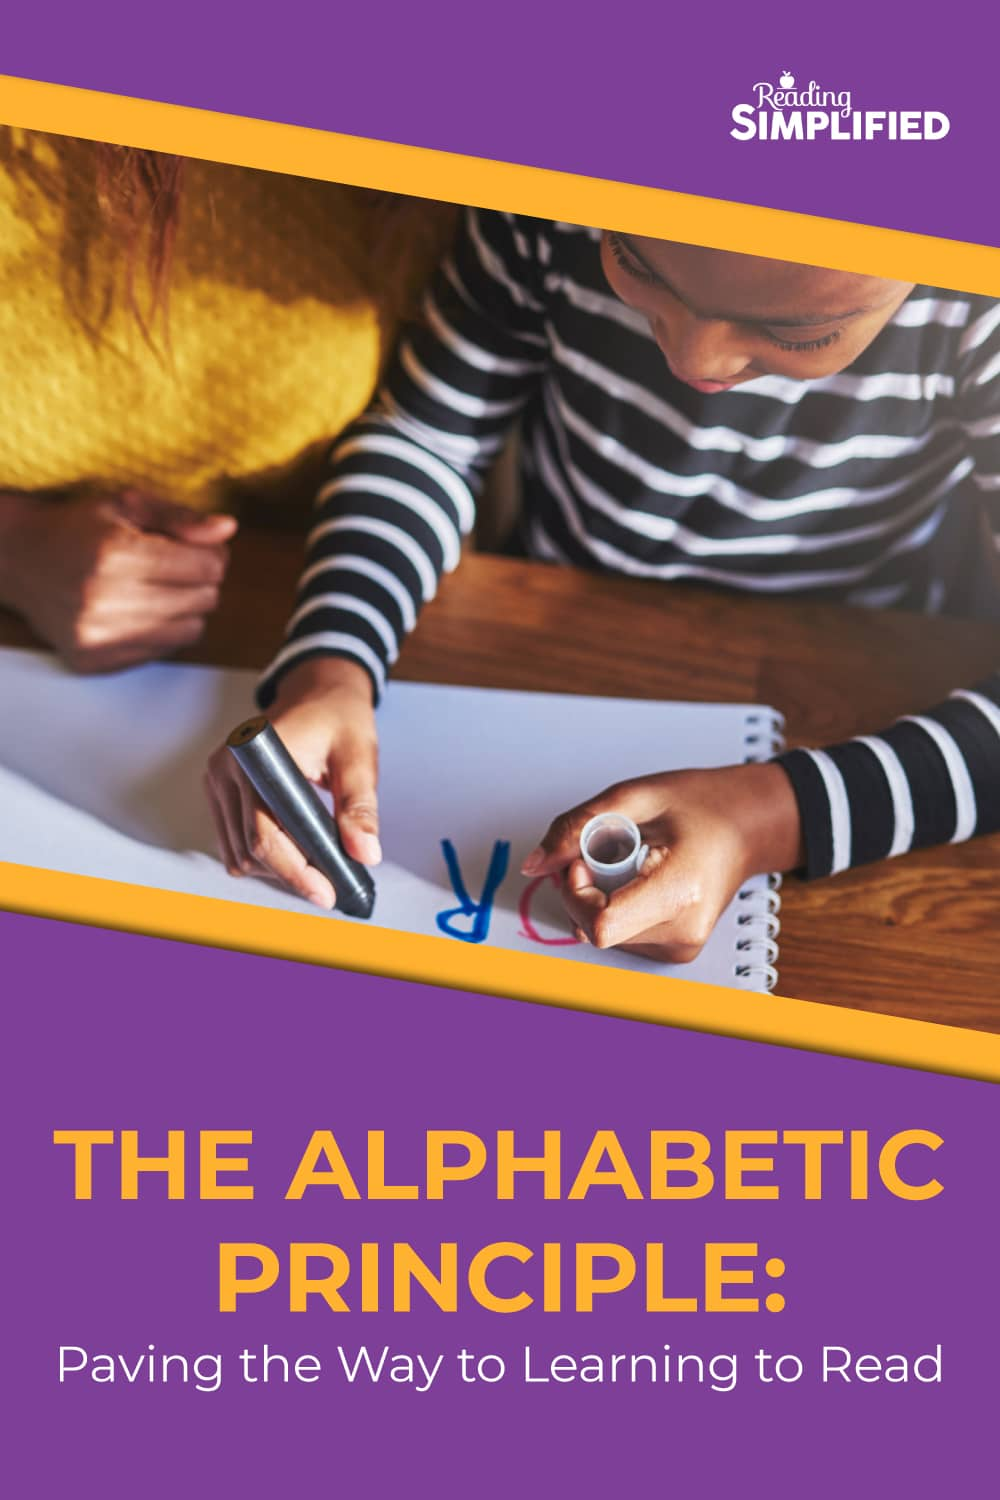 The Alphabetic Principle: Paving the Way to Learning to Read, child writing letters on paper